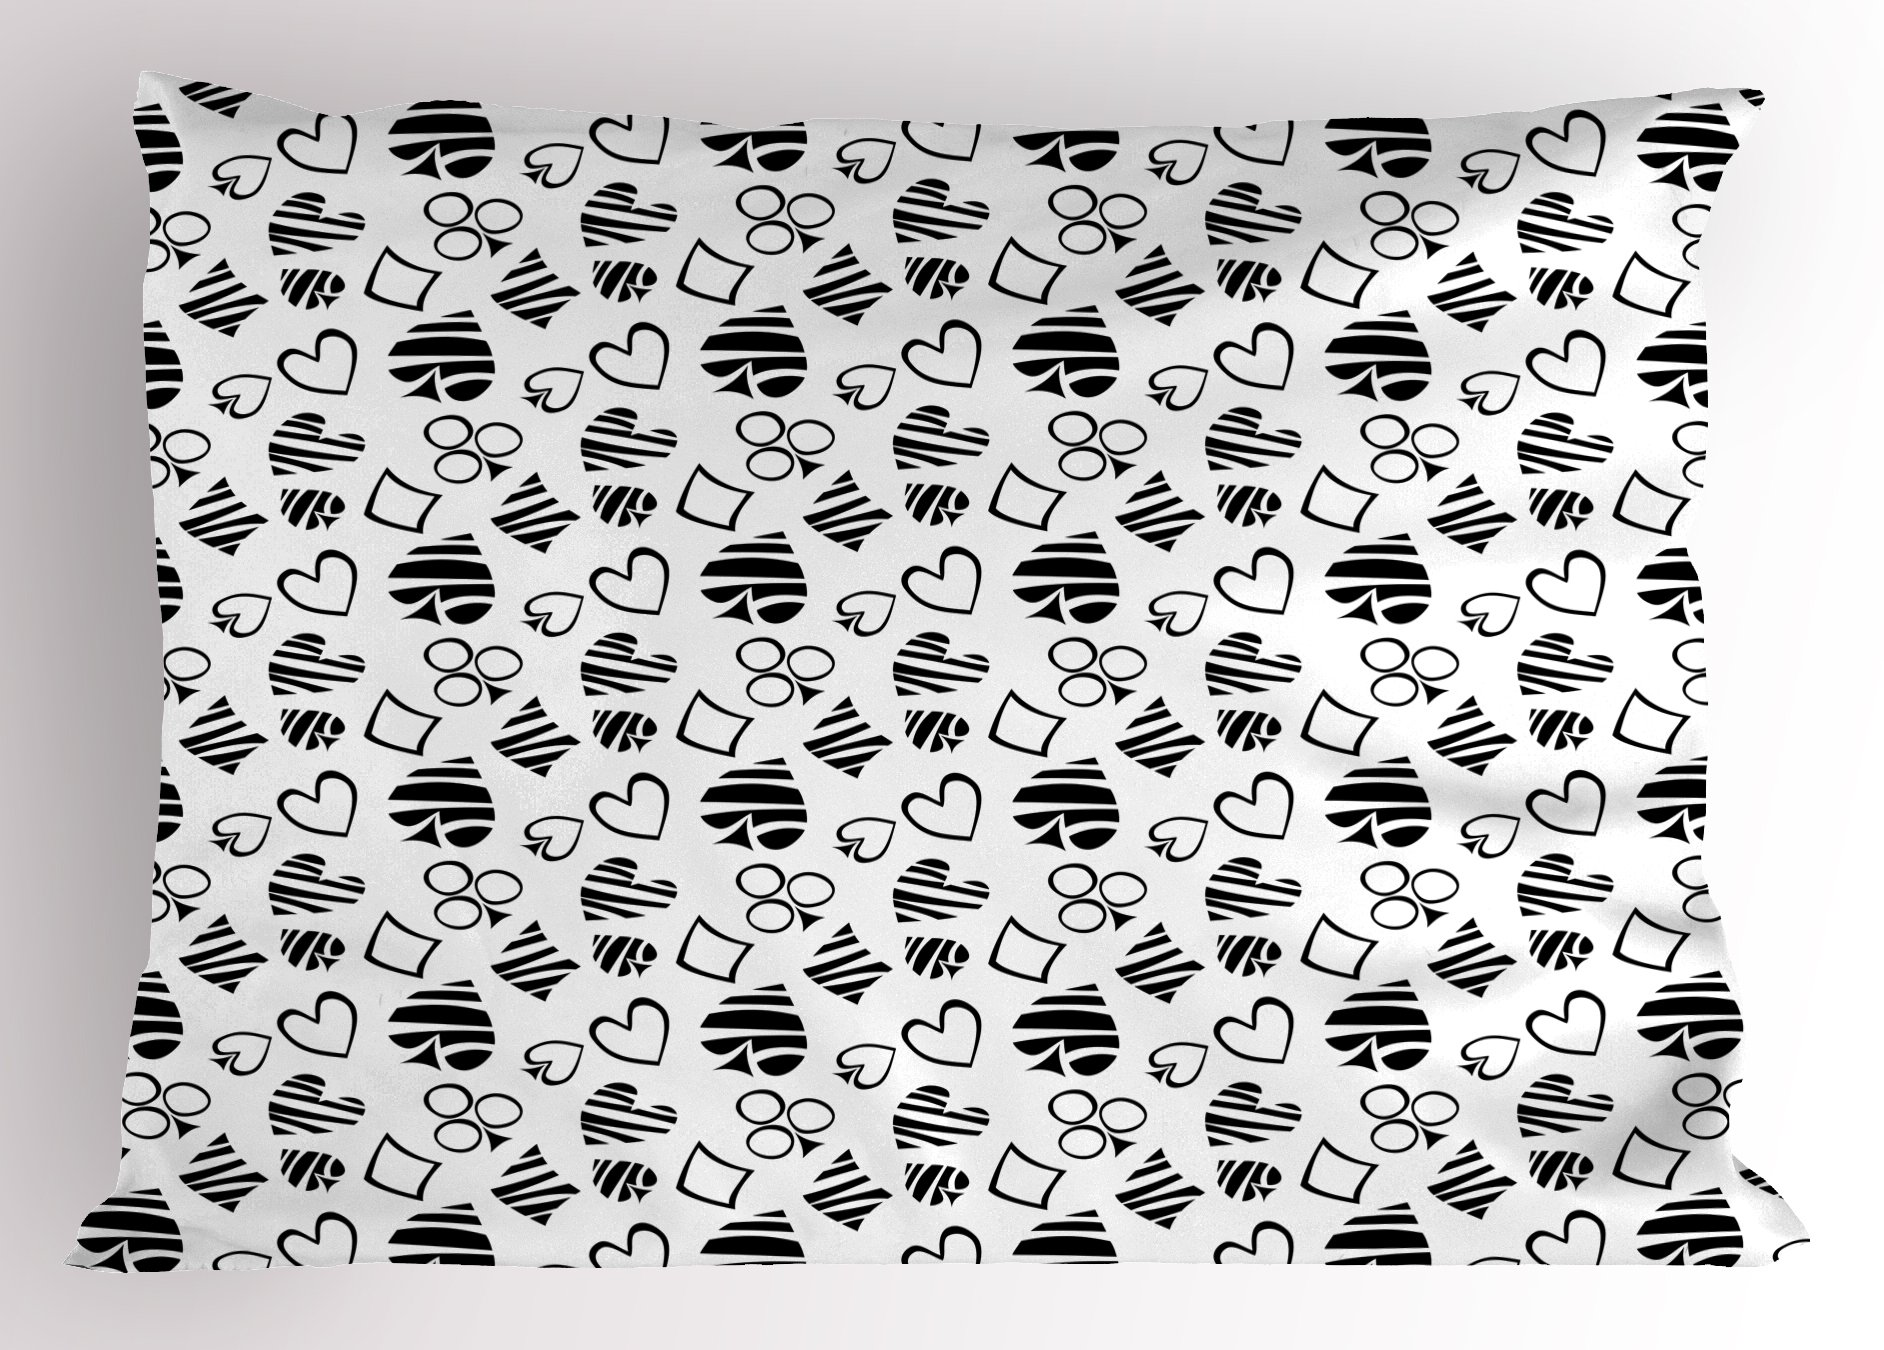 Lunarable Casino Pillow Sham, Monochrome Design of Playing Card Icons Repetitive Gambling Game Themed Ornaments, Decorative Standard King Size Printed Pillowcase, 36 X 20 inches, Black White